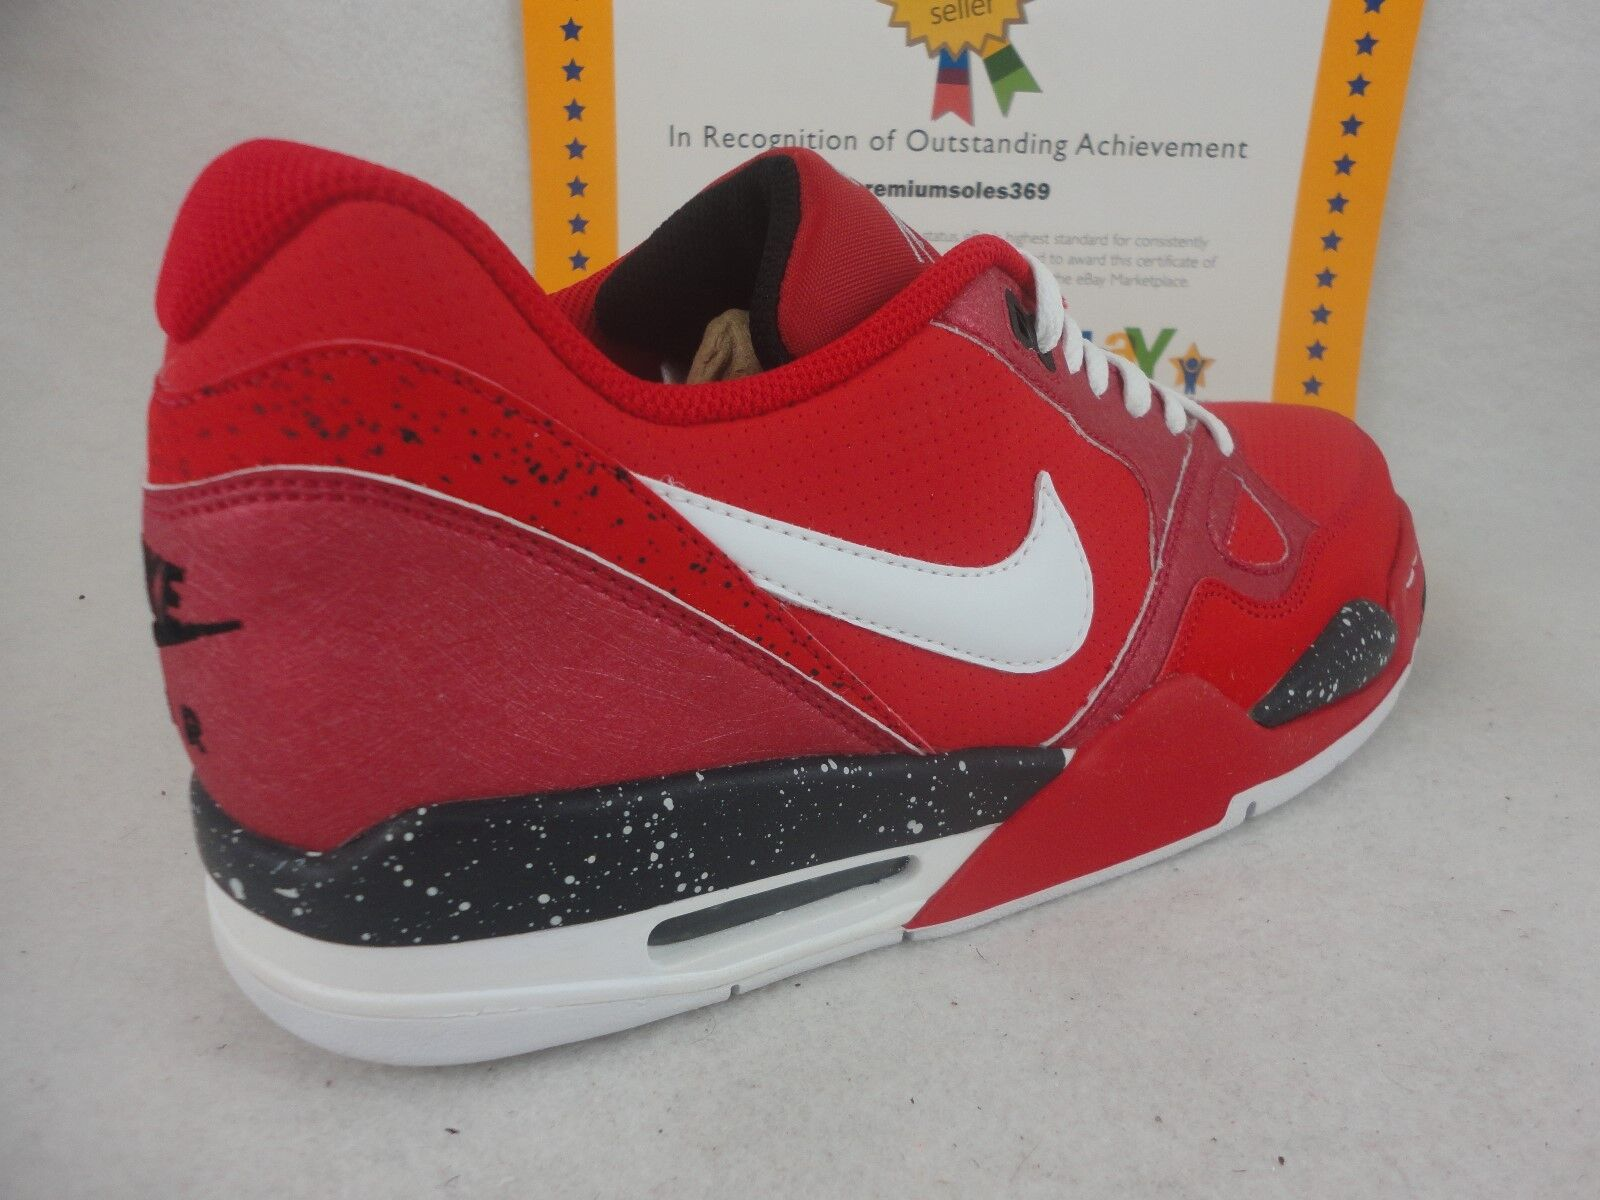 Nike Flight '13, Red / Anthracite, Toro, 2018 DS, Size 10.5